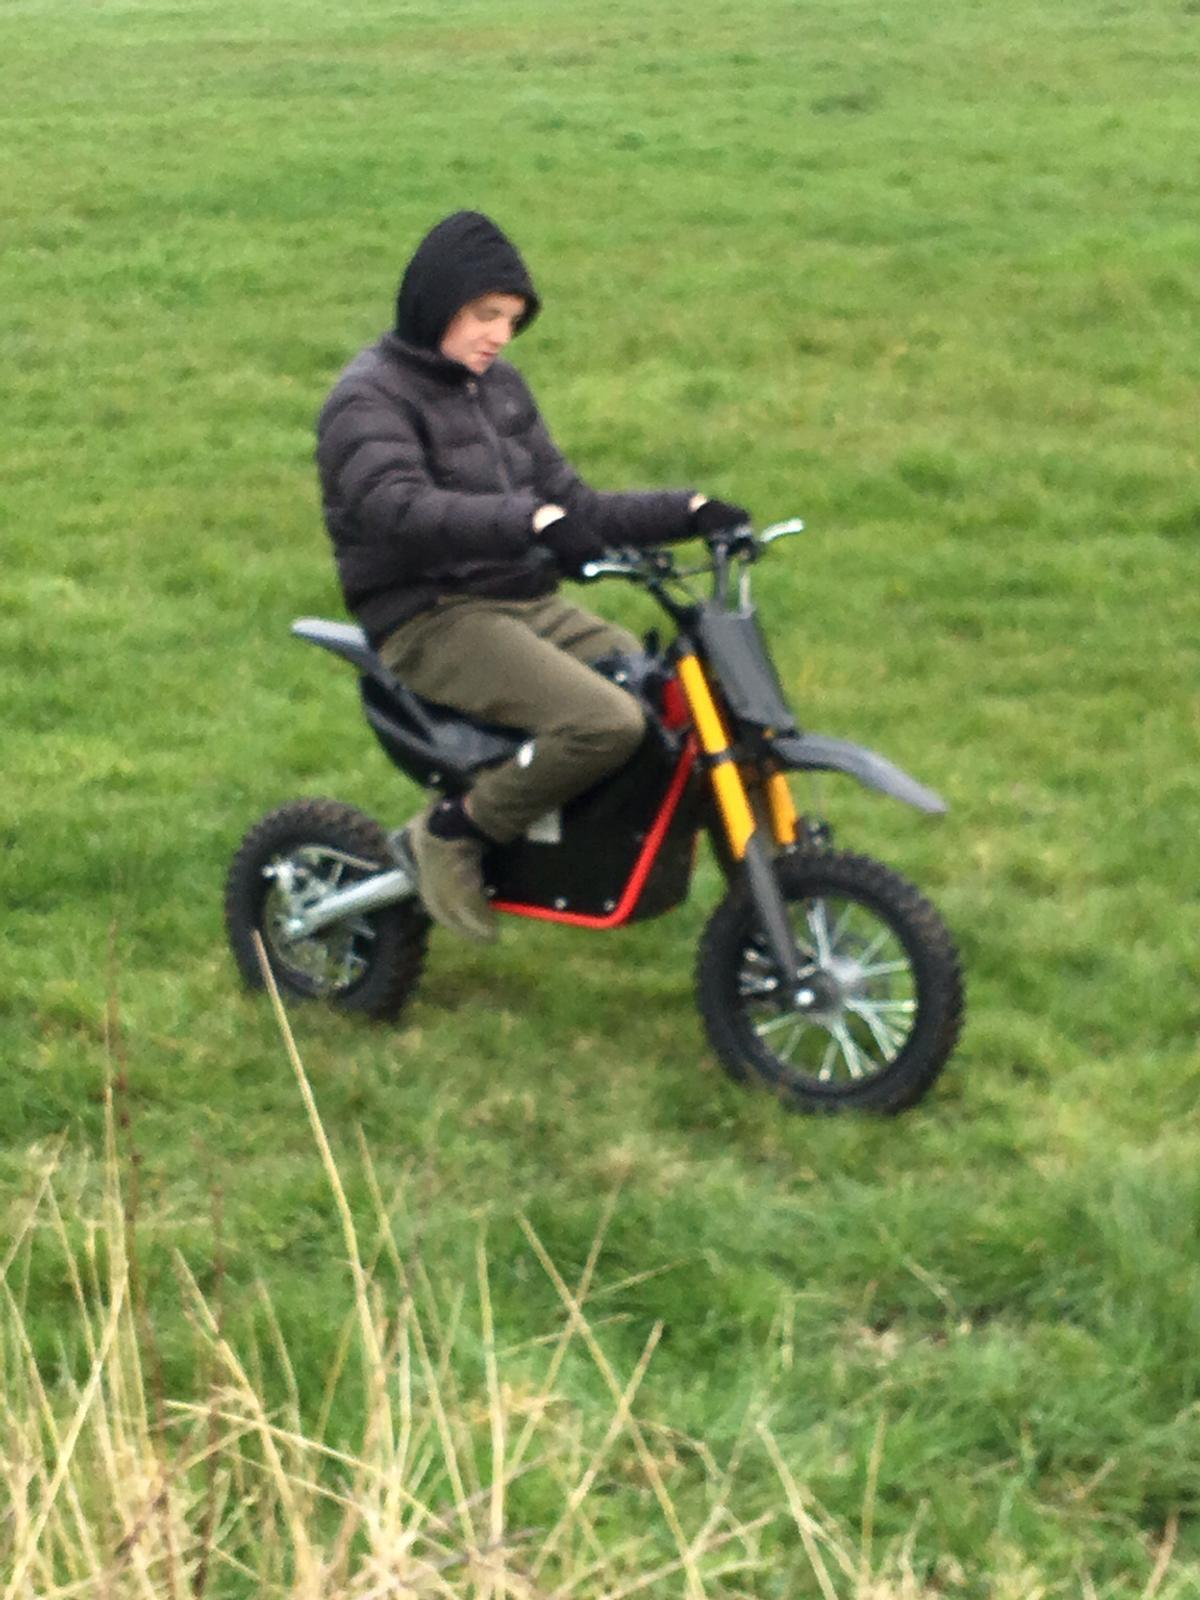 Electric Dirt Bike 1200w 48v In M28 Wigan For 550 00 For Sale Shpock